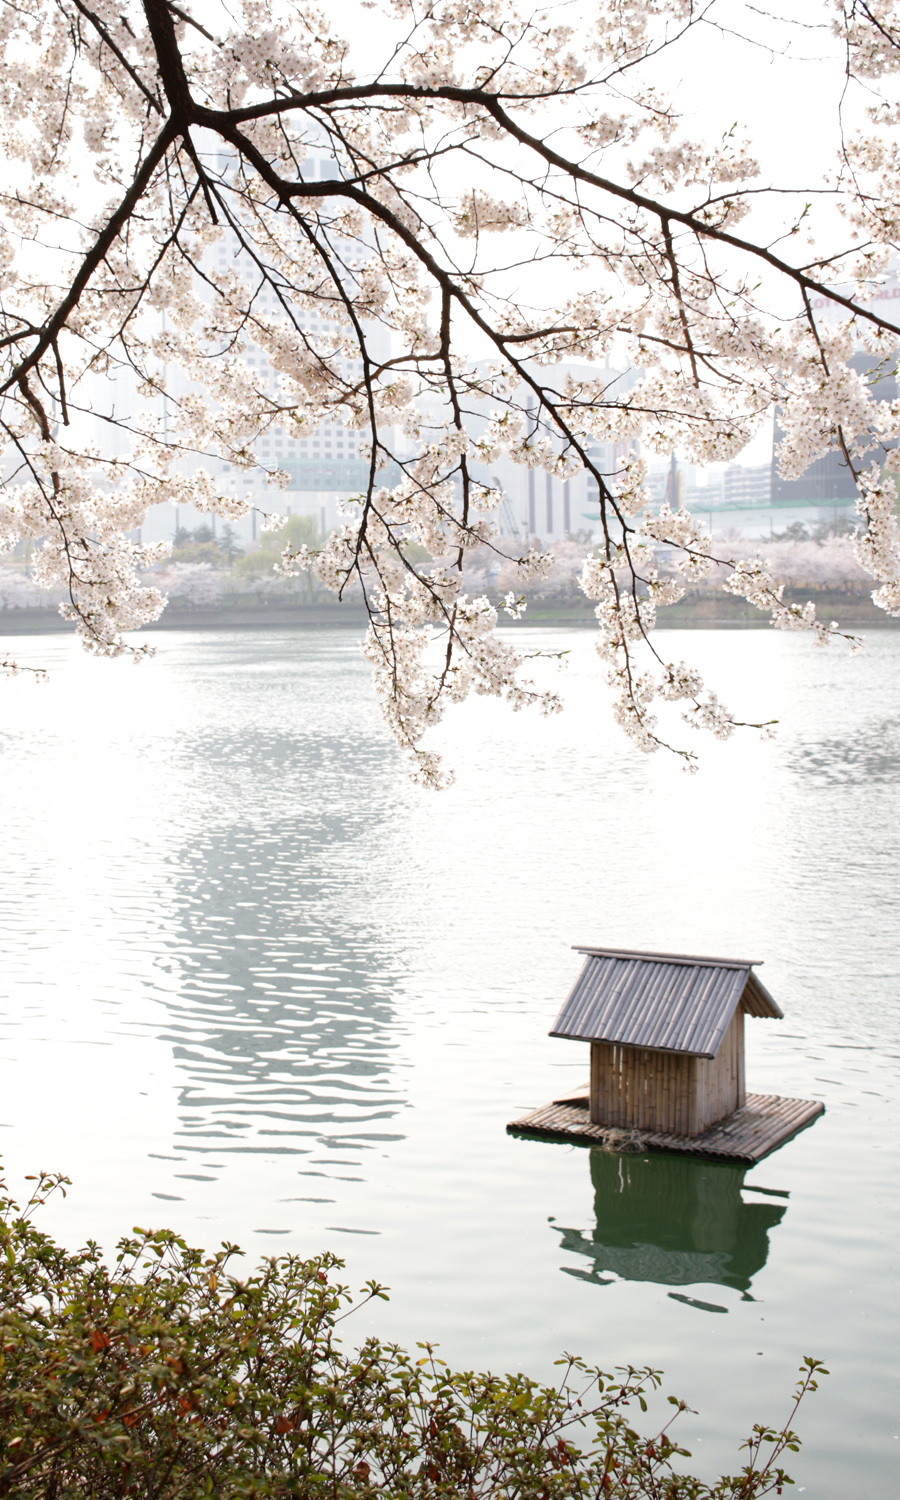 2015-04-09-korea-seoul-jamshil-seokchon-lake-cherry-blossoms-15